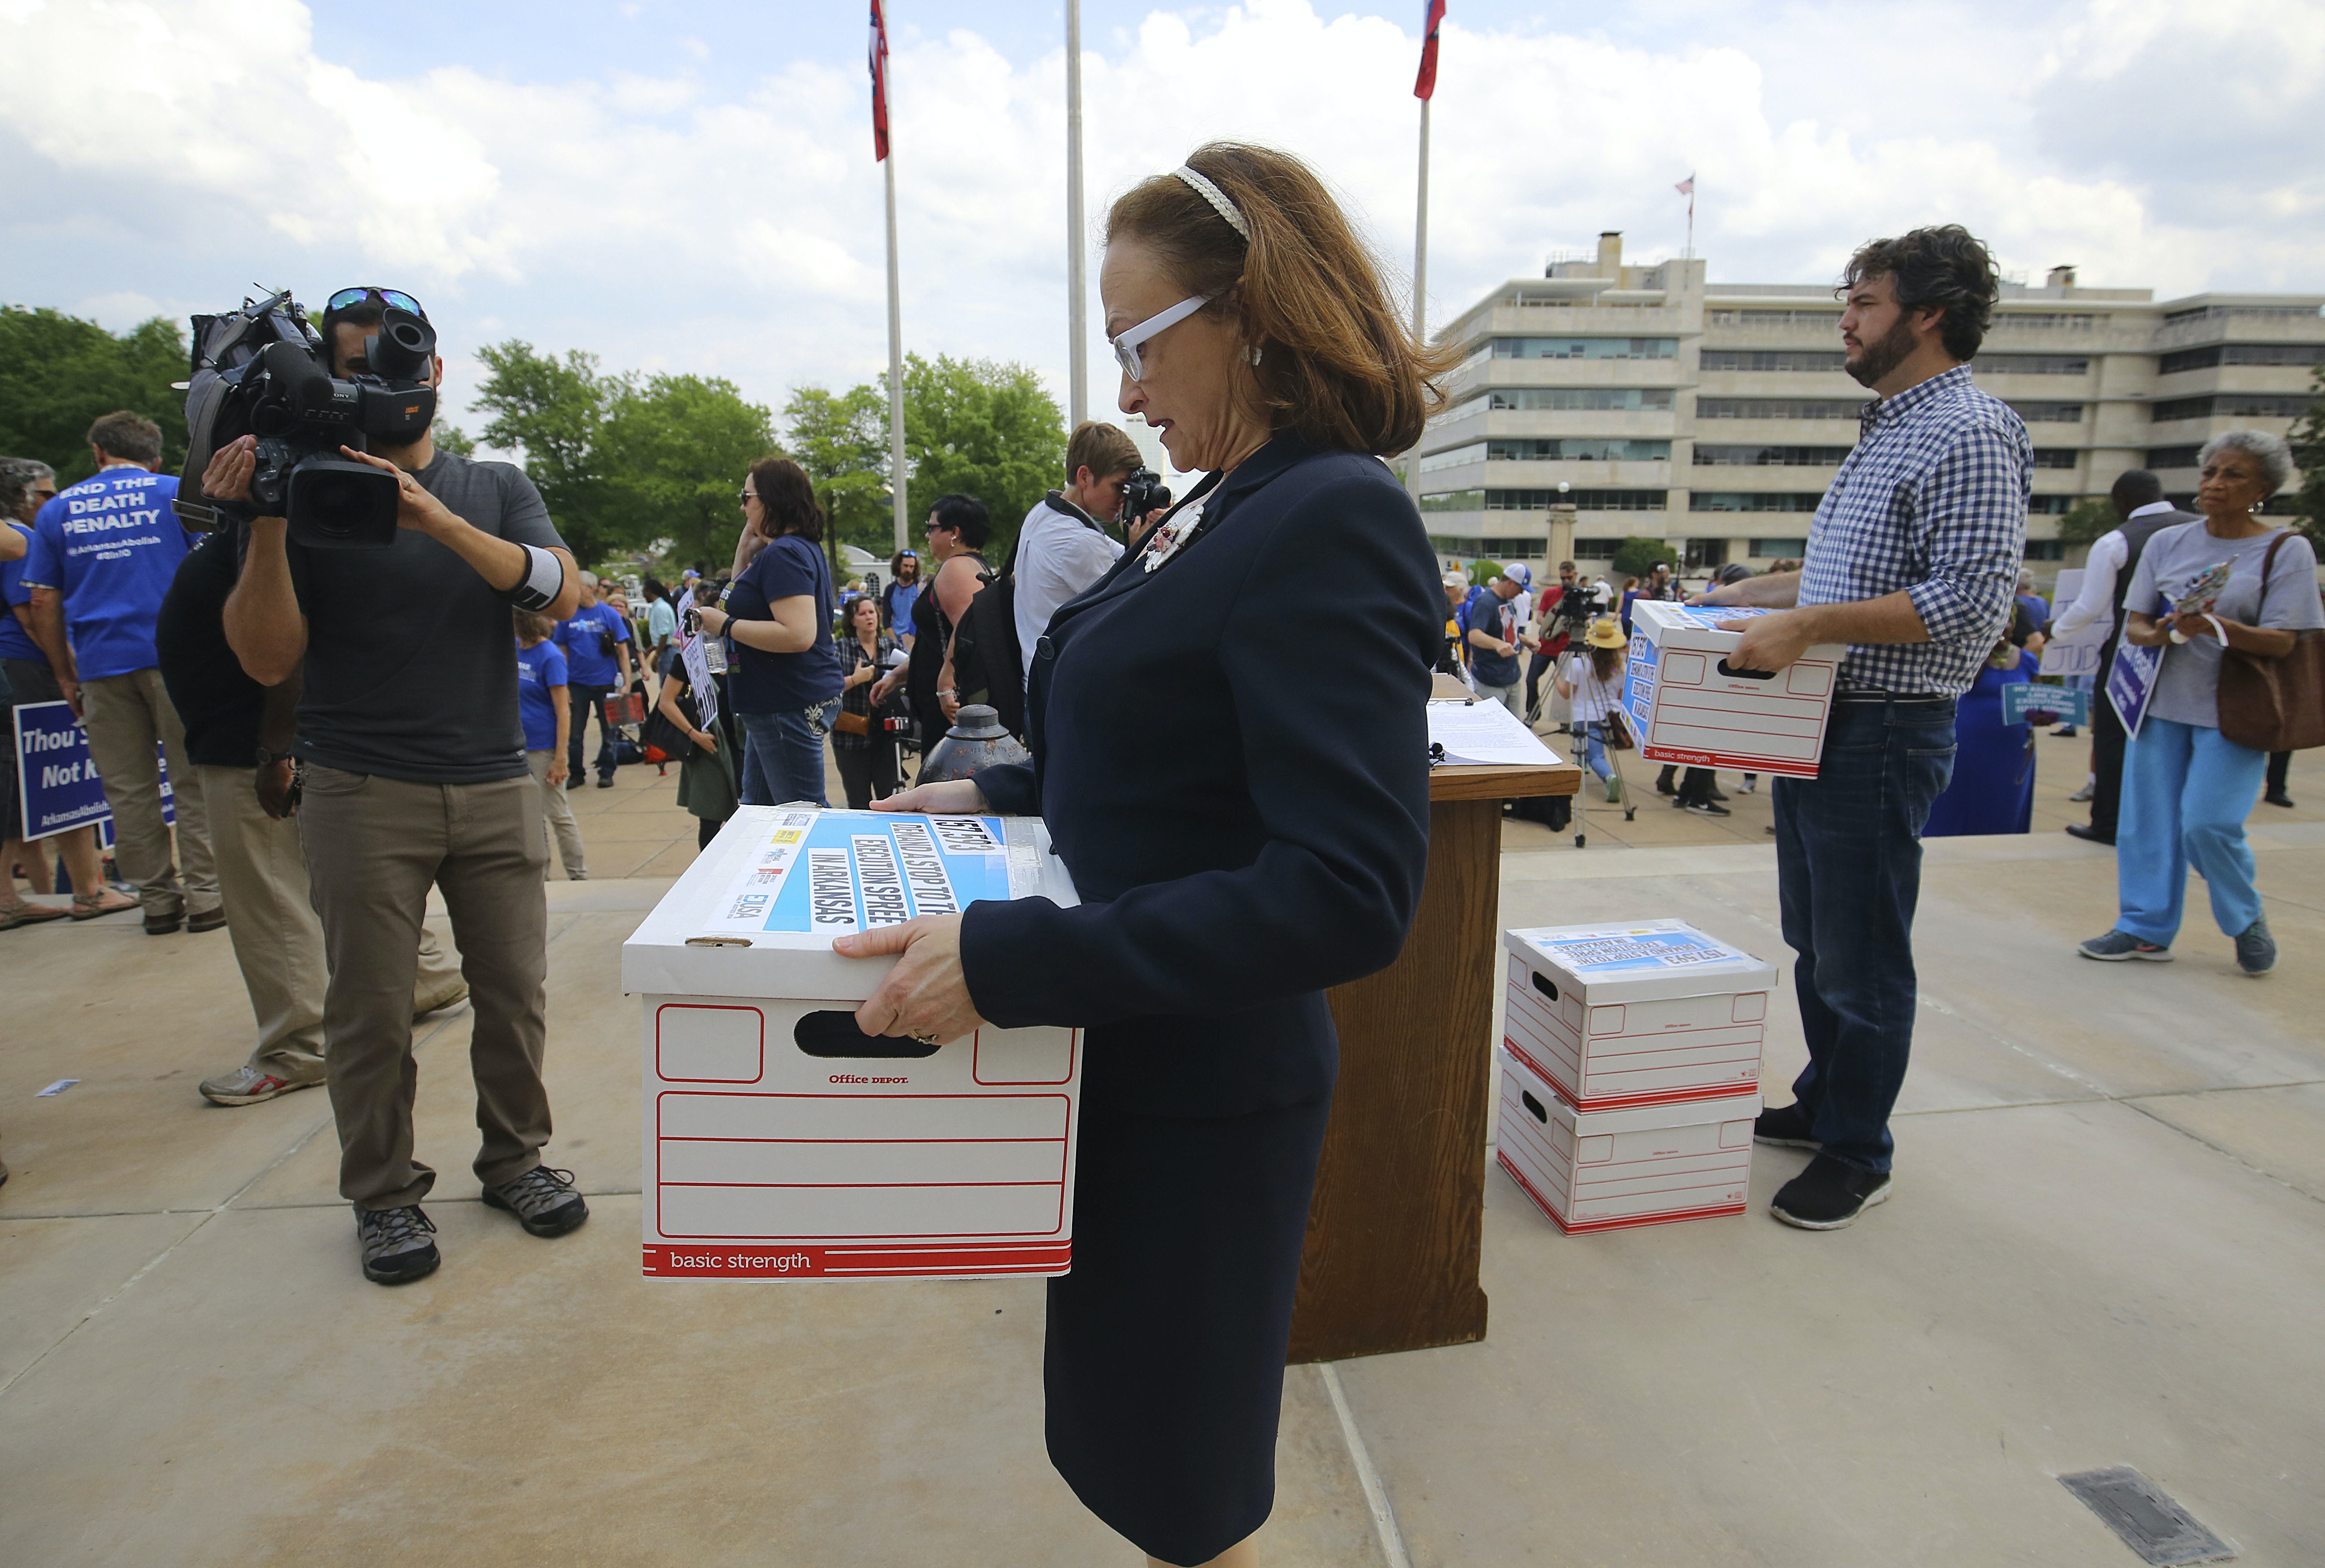 Arkansas American Civil Liberties Union executive director Rita Sklar and others prepare to carry boxes containing petitions to Gov. Asa Hutchinson's office asking him to stay upcoming executions following a rally opposing the executions, on the front steps of Arkansas' Capitol, Friday, April 14, 2017, in Little Rock, Ark. (Stephen B. Thornton/The Arkansas Democrat-Gazette via AP)